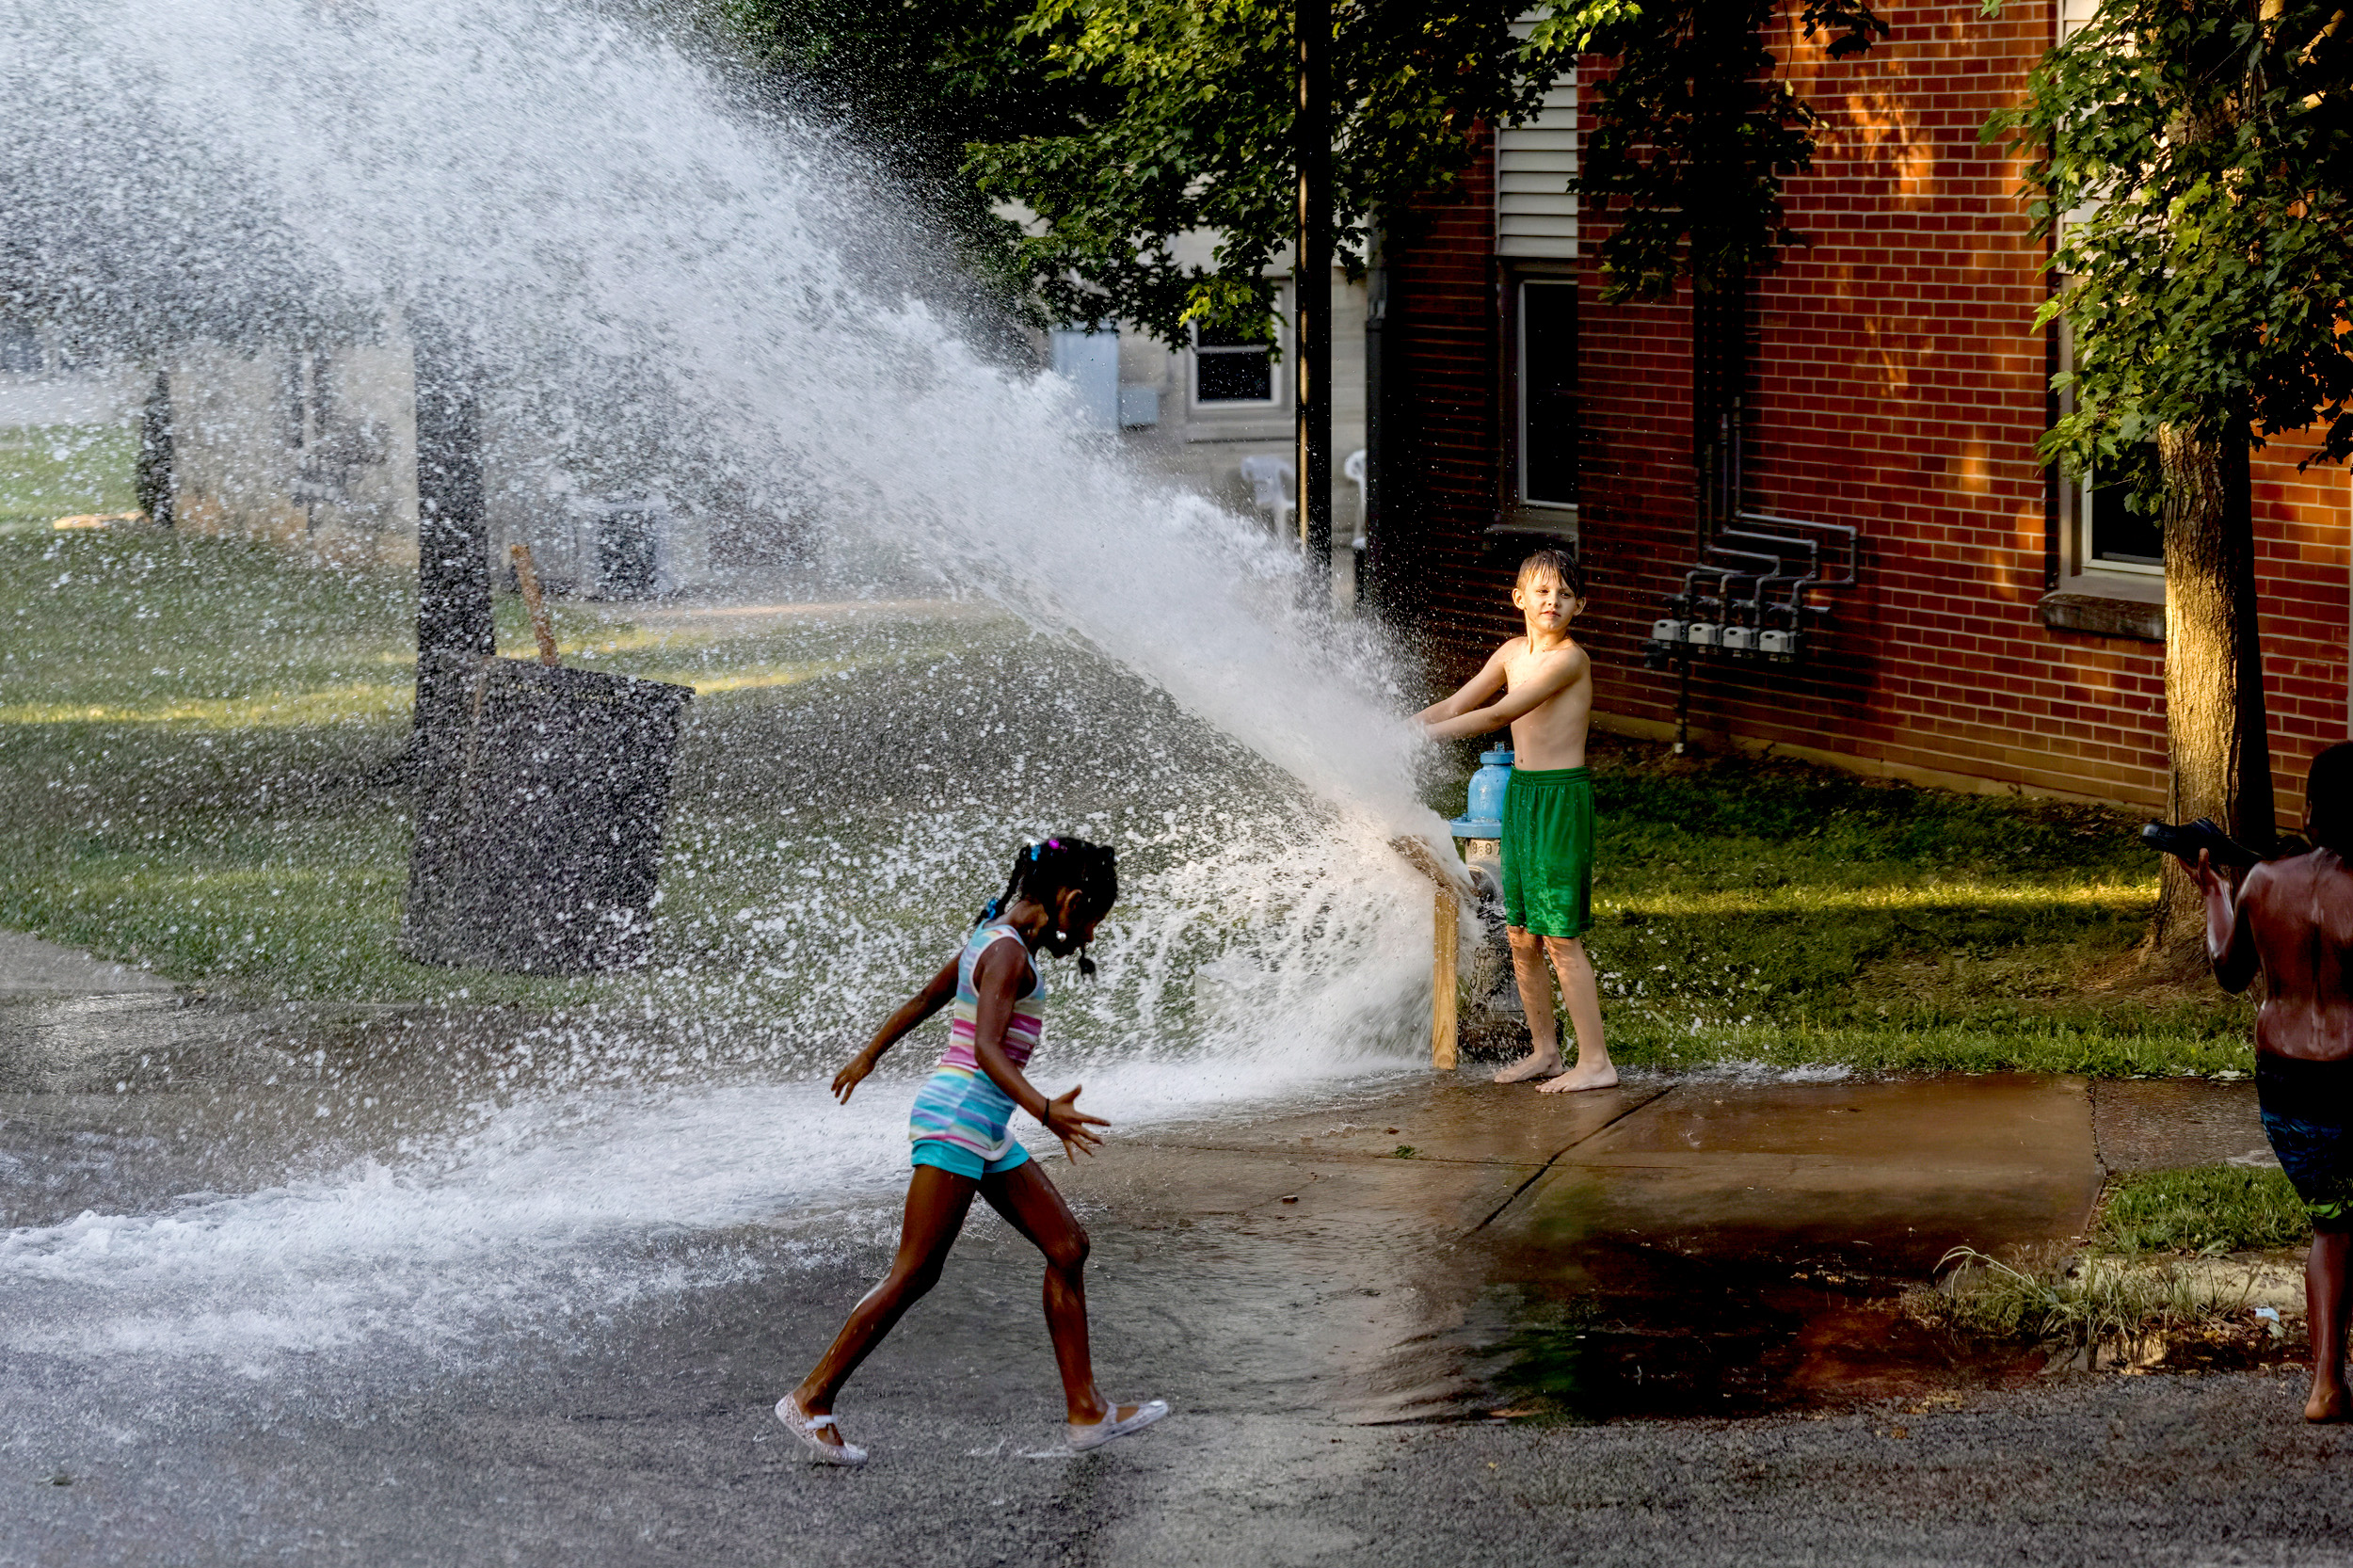 Heat wave felt across the U.S., with temps up to 100-115 degrees